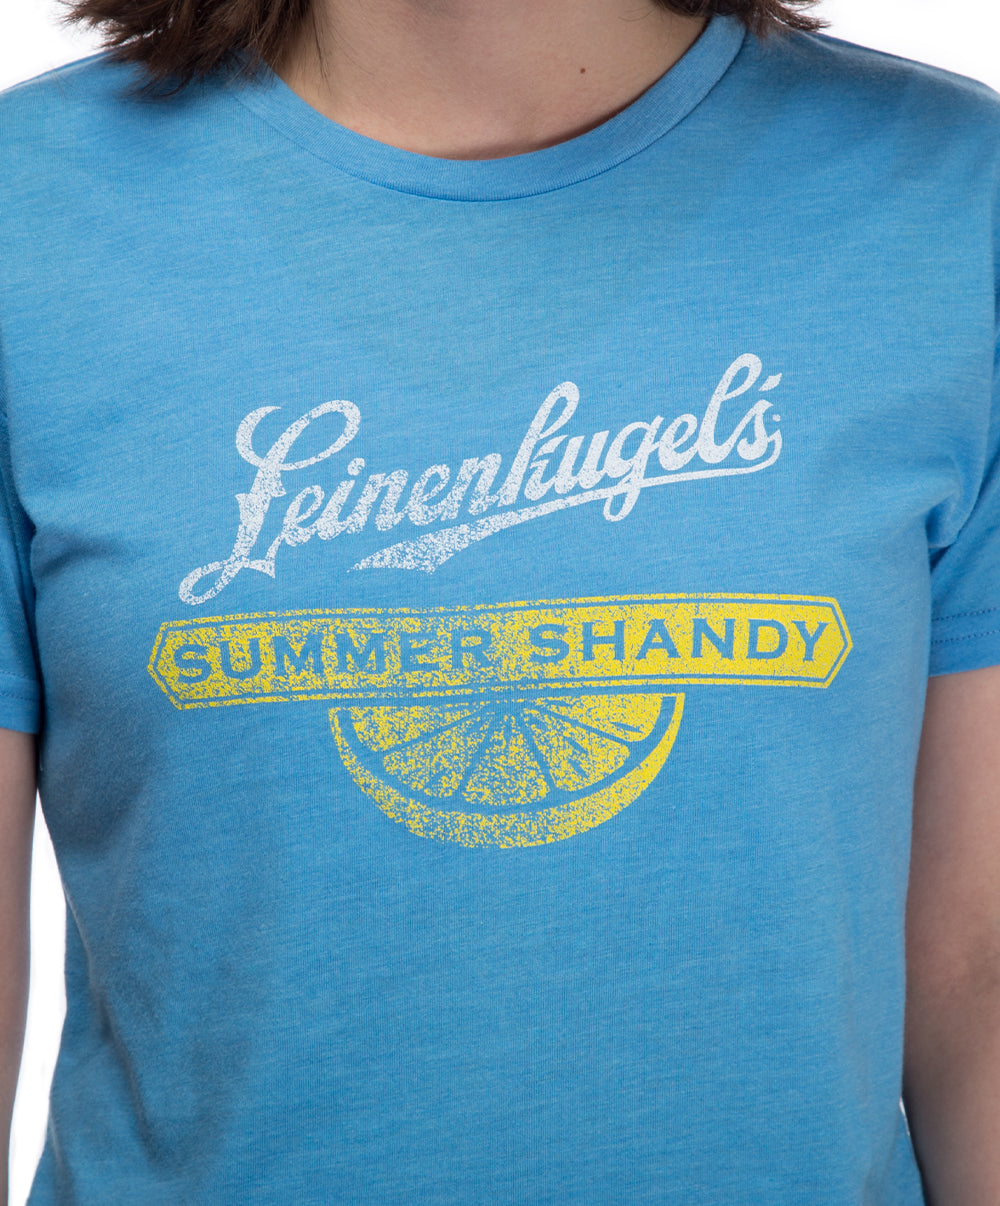 LADIES RUMOR SHANDY TEE